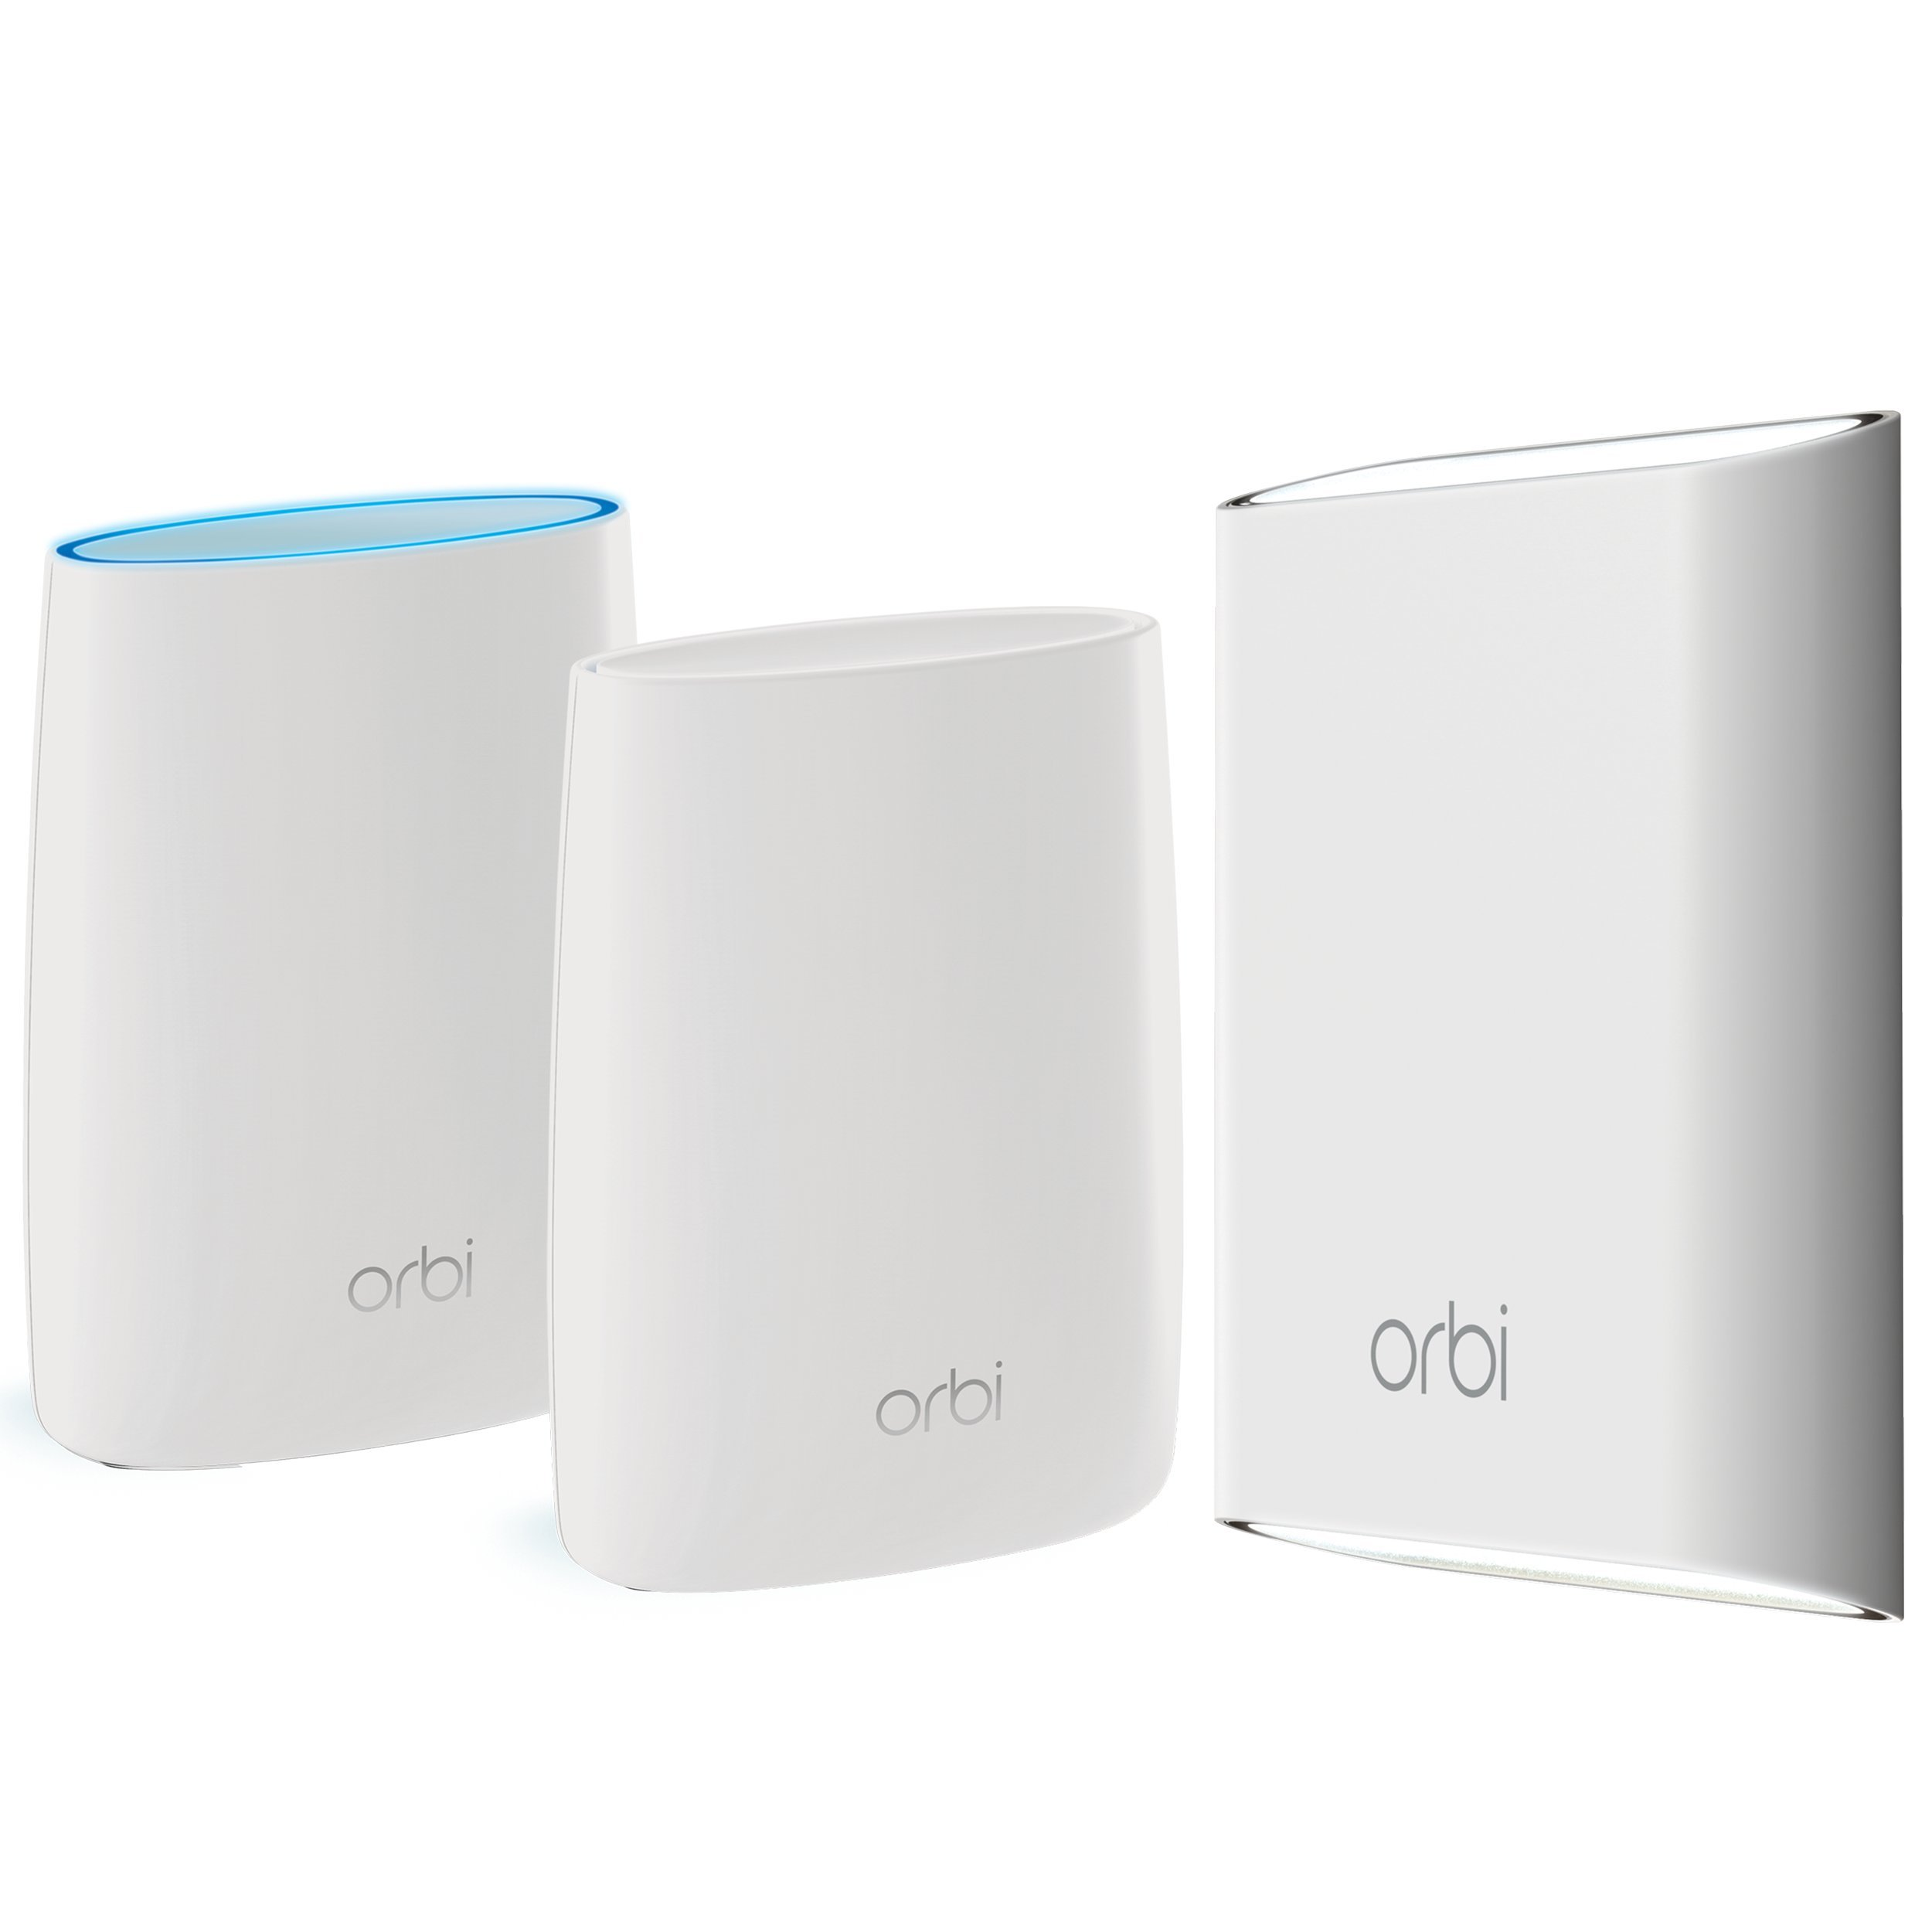 NETGEAR Orbi Whole Home & Yard Mesh WiFi System with Tri-Band - 7,500 sqft, Eliminate WiFi Dead Zones Indoors and Out, Alexa Support, AC3000 (Set of 3) by NETGEAR